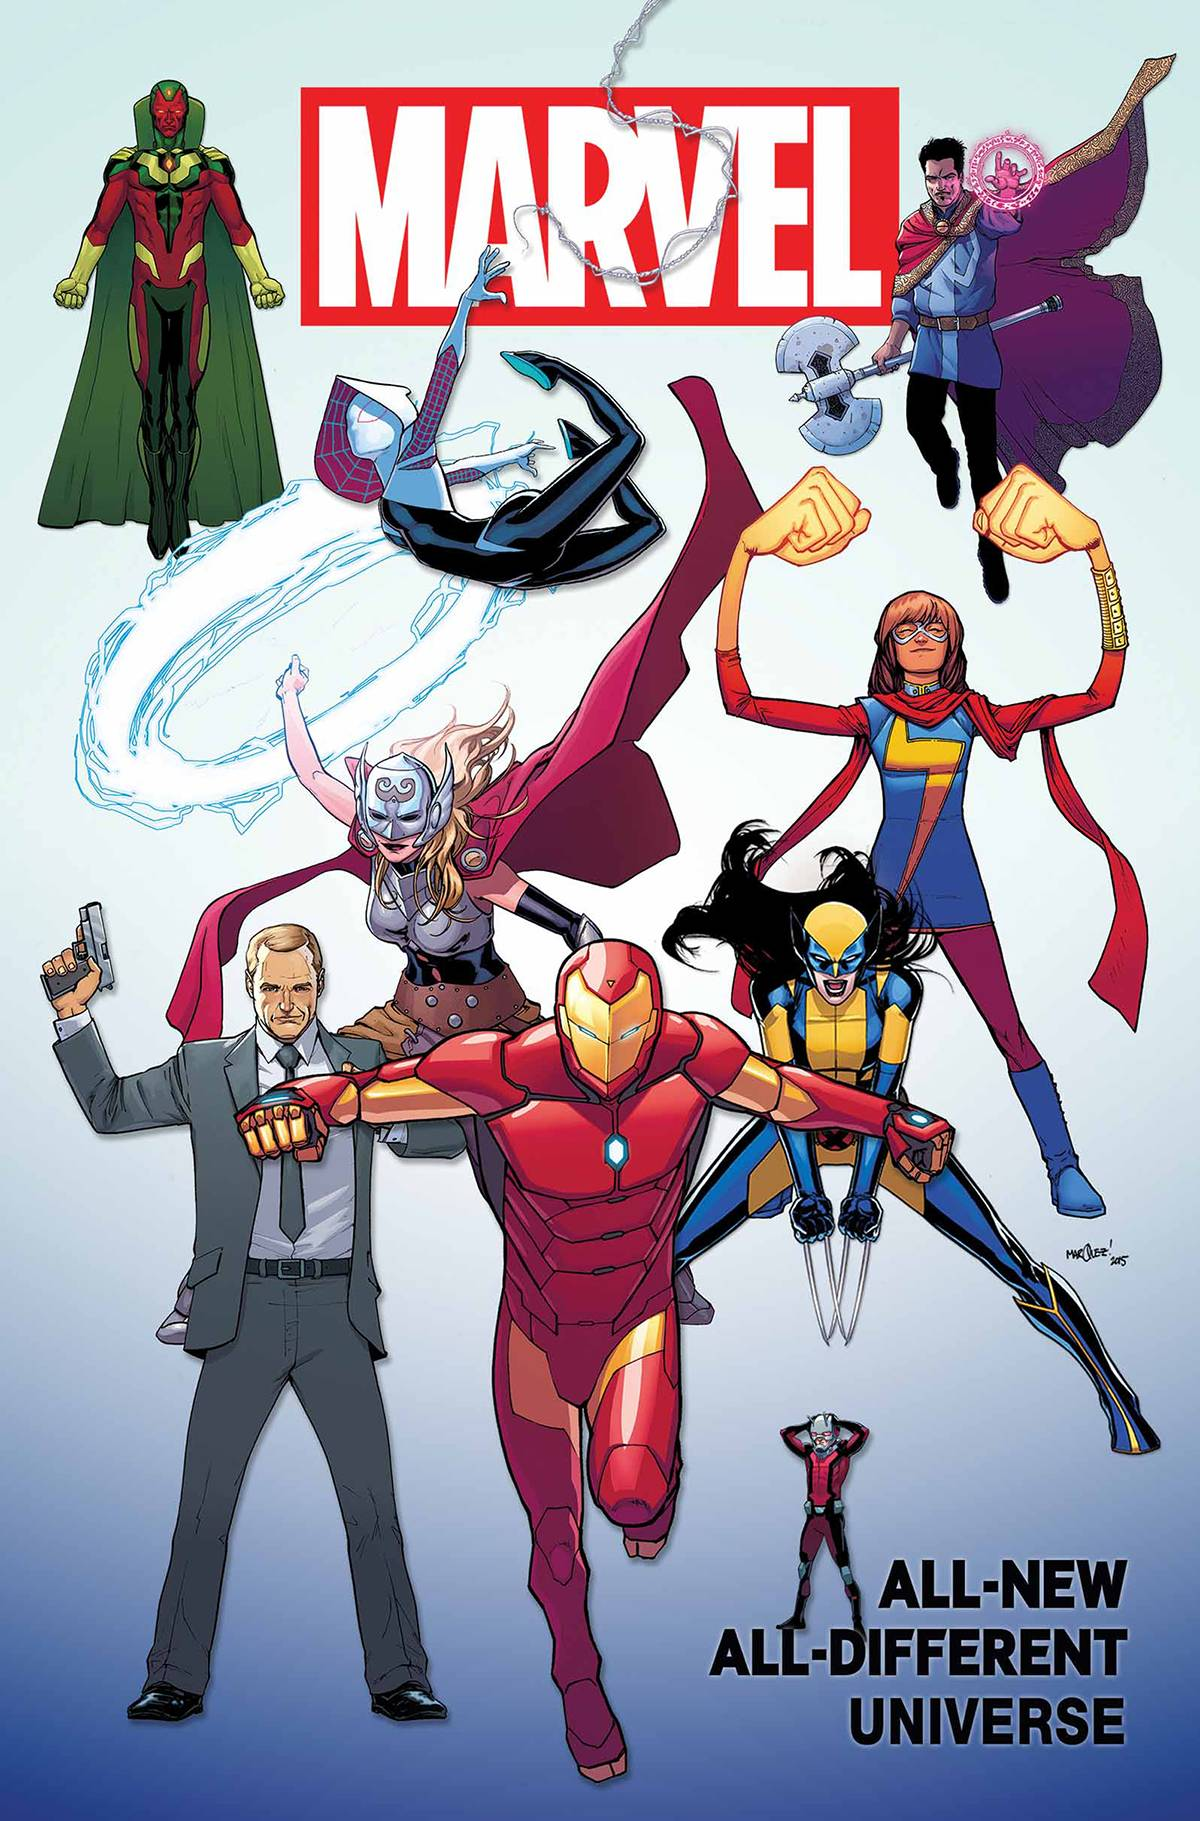 All-New, All Different Marvel Universe Vol 1 1 Teaser Cover.jpg